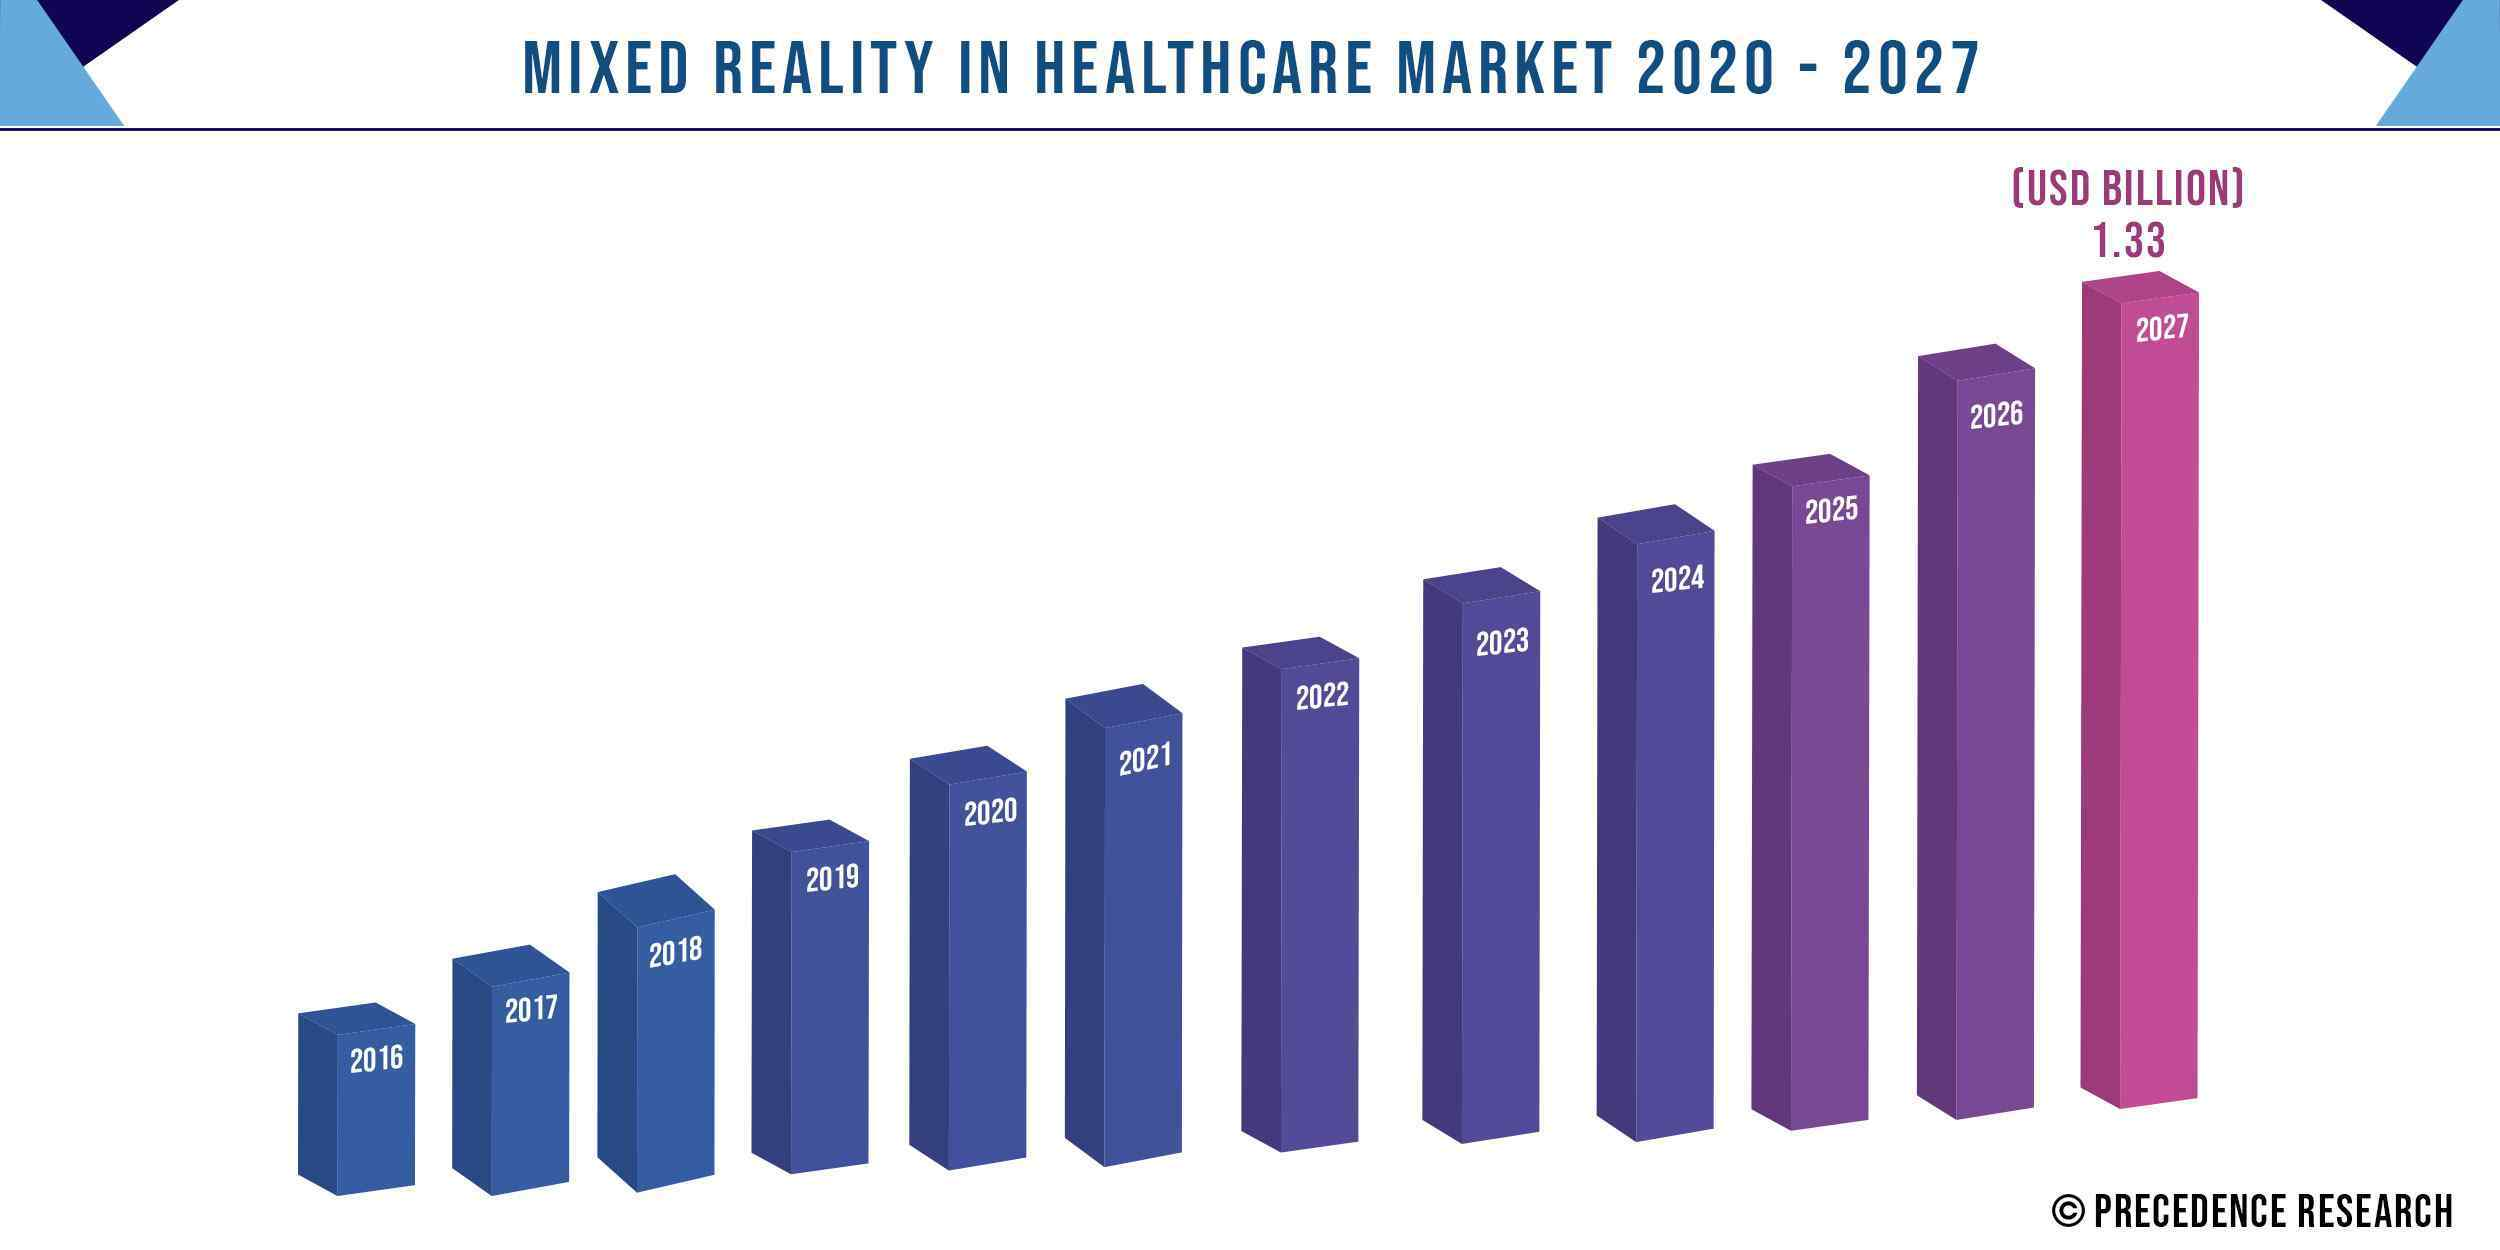 Mixed Reality in Healthcare Market Size 2016 to 2027